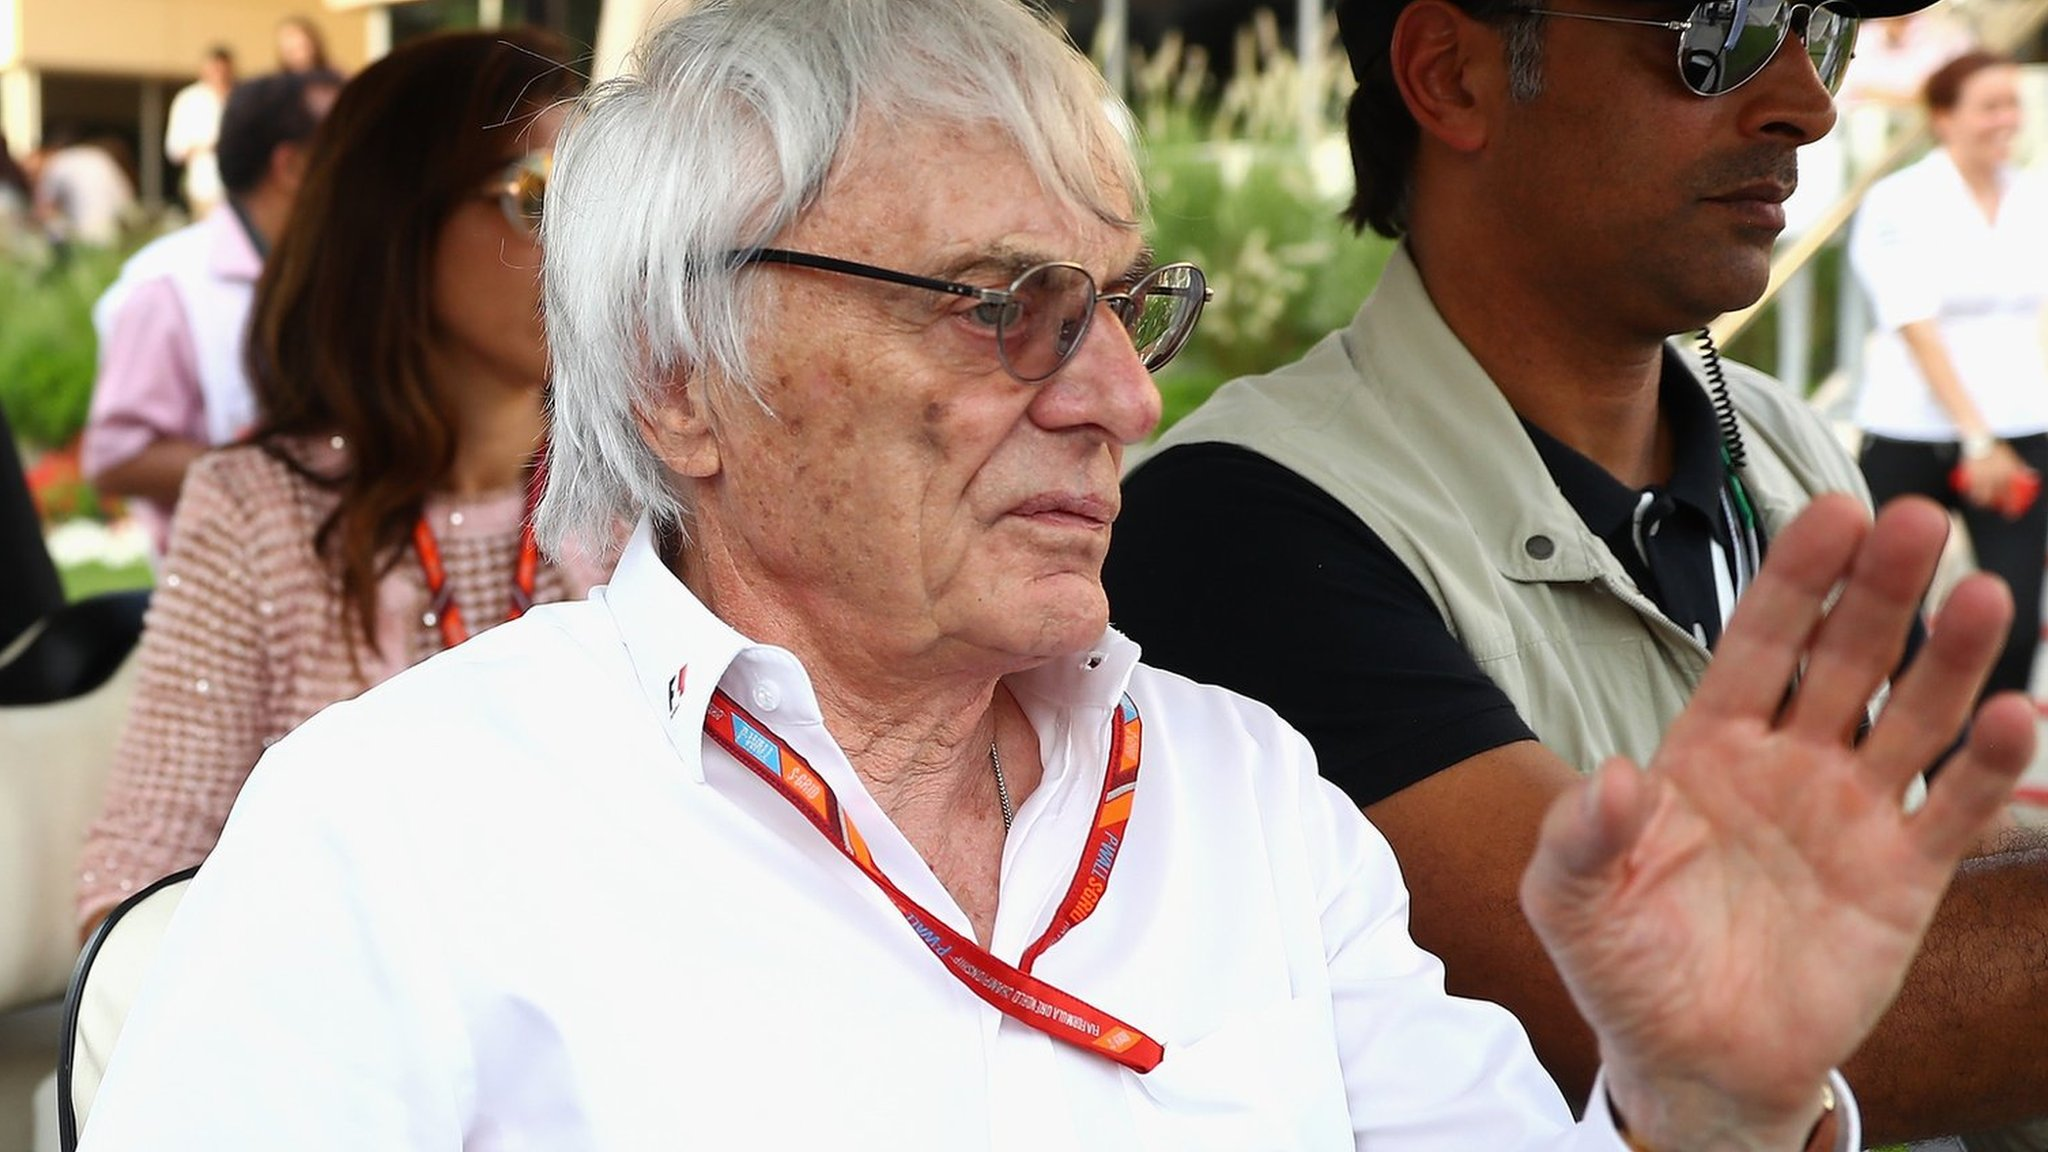 Formula 1: Bernie Ecclestone says new owners don't want his input